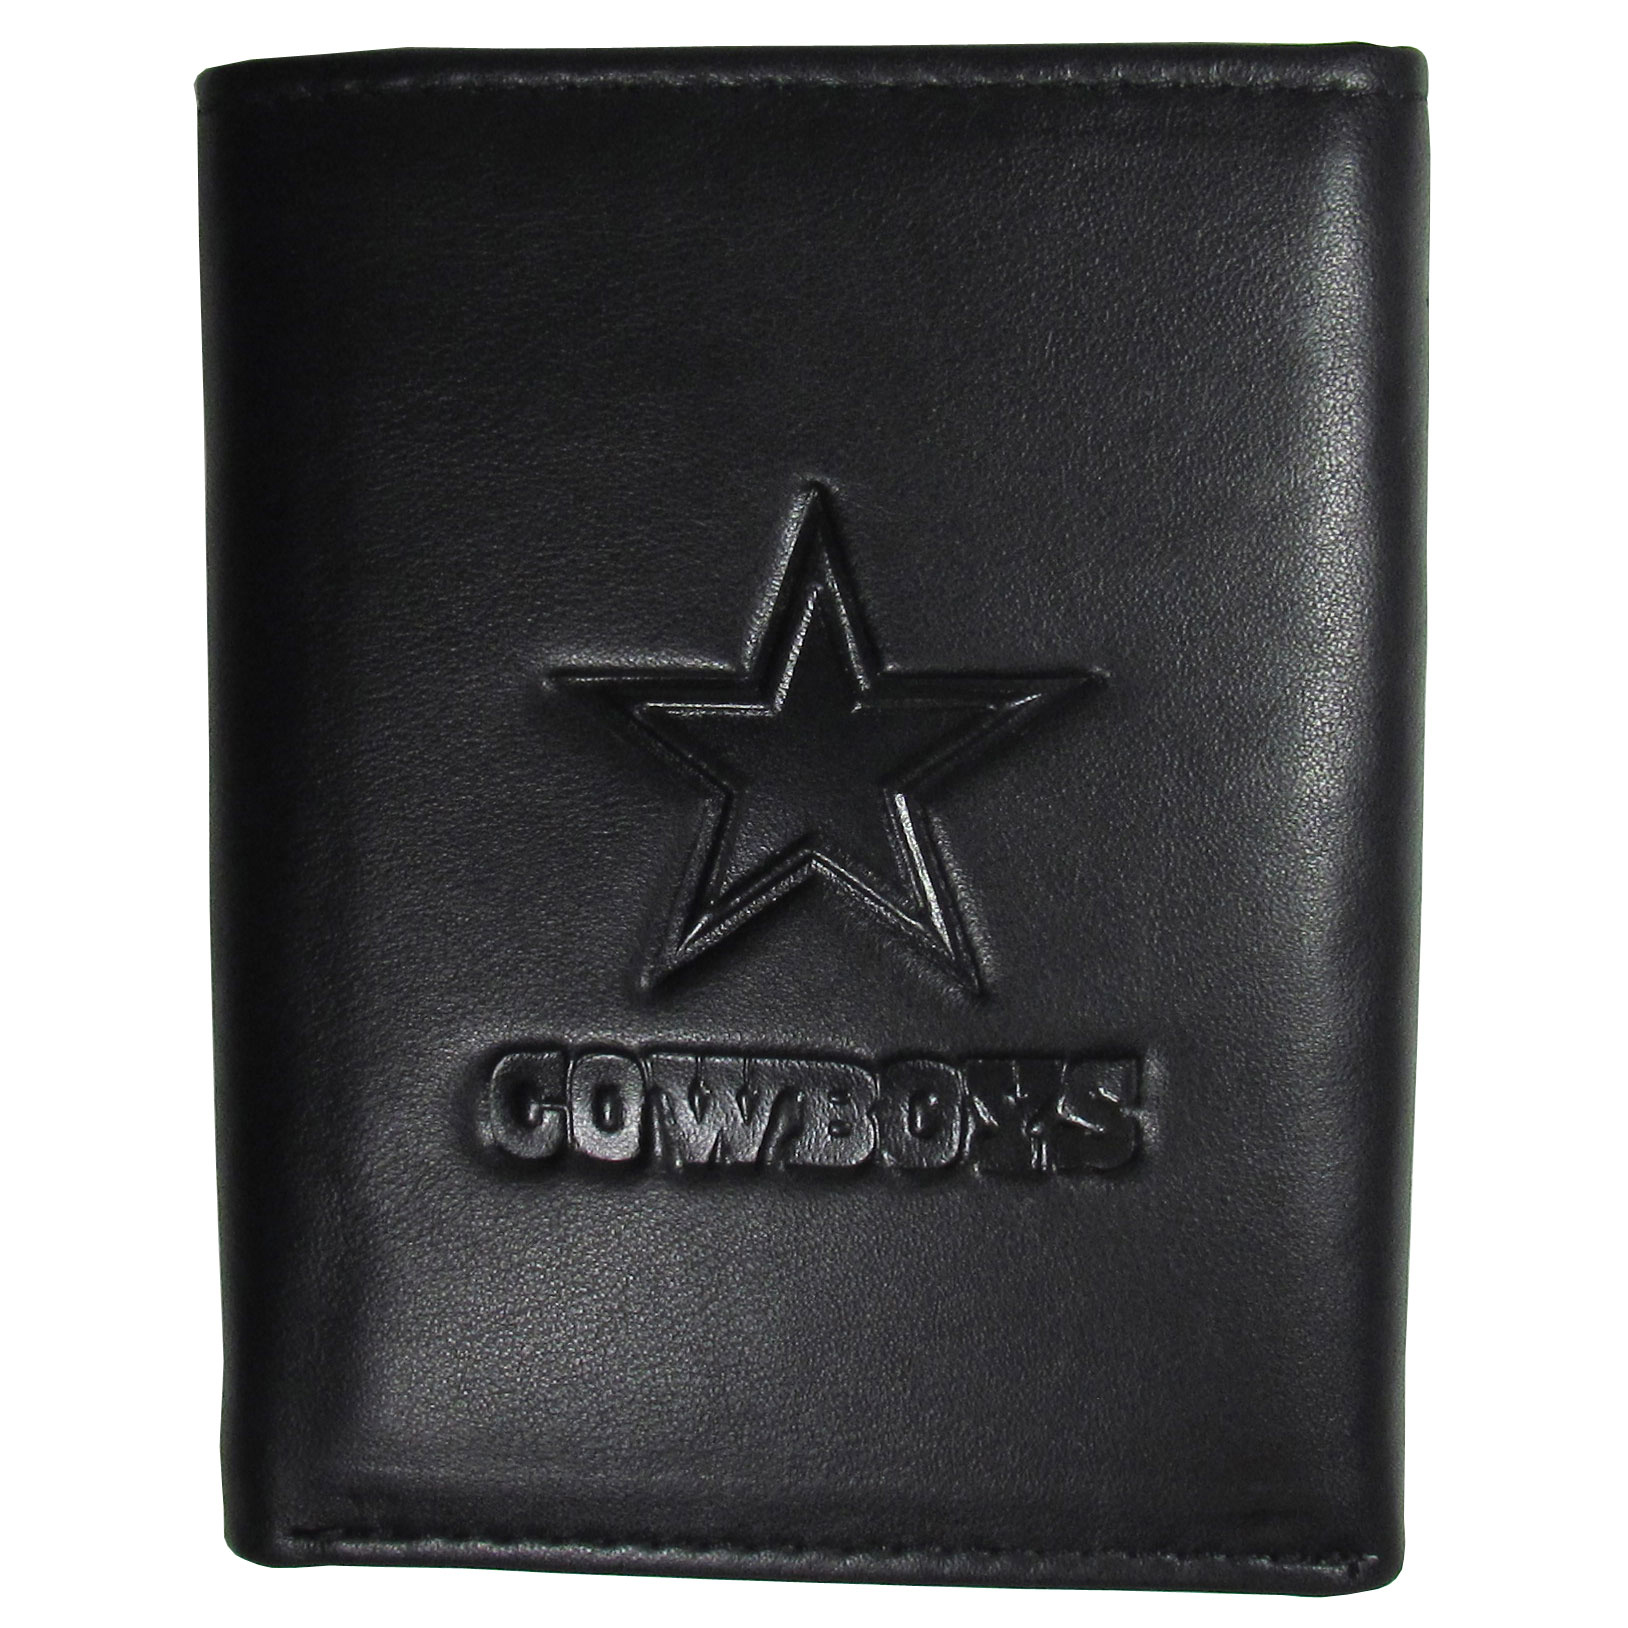 Dallas Cowboys Embossed Leather Tri-fold Wallet - This stylish leather wallet is made of high quality leather with a supple feel and classic look. The front of the tri-fold style wallet has a deeply embossed Dallas Cowboys logo. The billfold is packed with features that will allow to keep organized, lots of credit card slots, windowed ID slot, large pockets for bills and a removable sleeve with extra slots for even more storage. This is a must-have men's fashion accessory that would make any fan very proud to own.